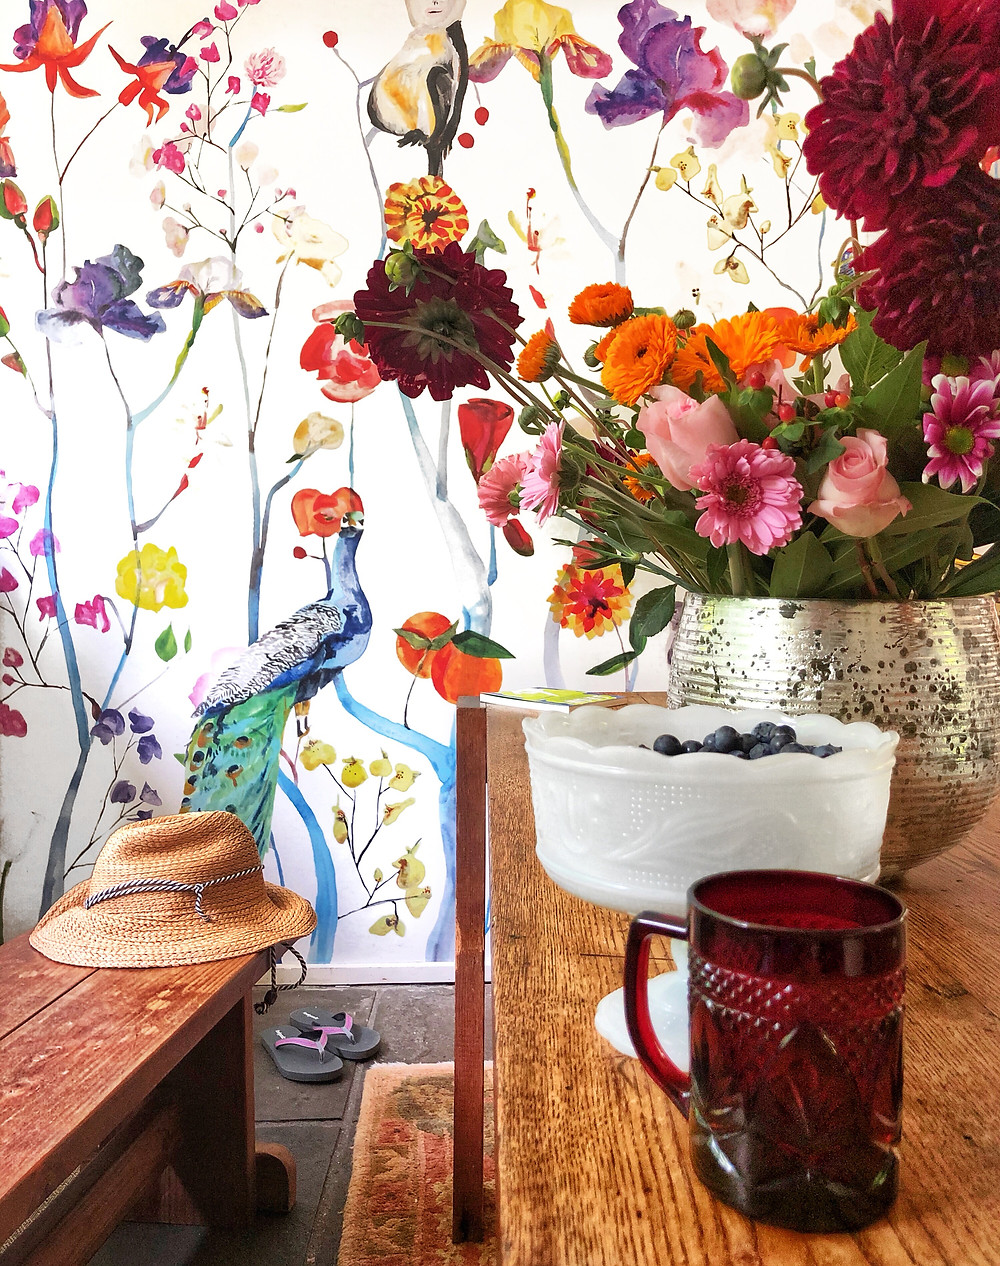 Floral wallpaper with vintage glass and bowl. Organic bouquet in the background with a summer hat and flip flops